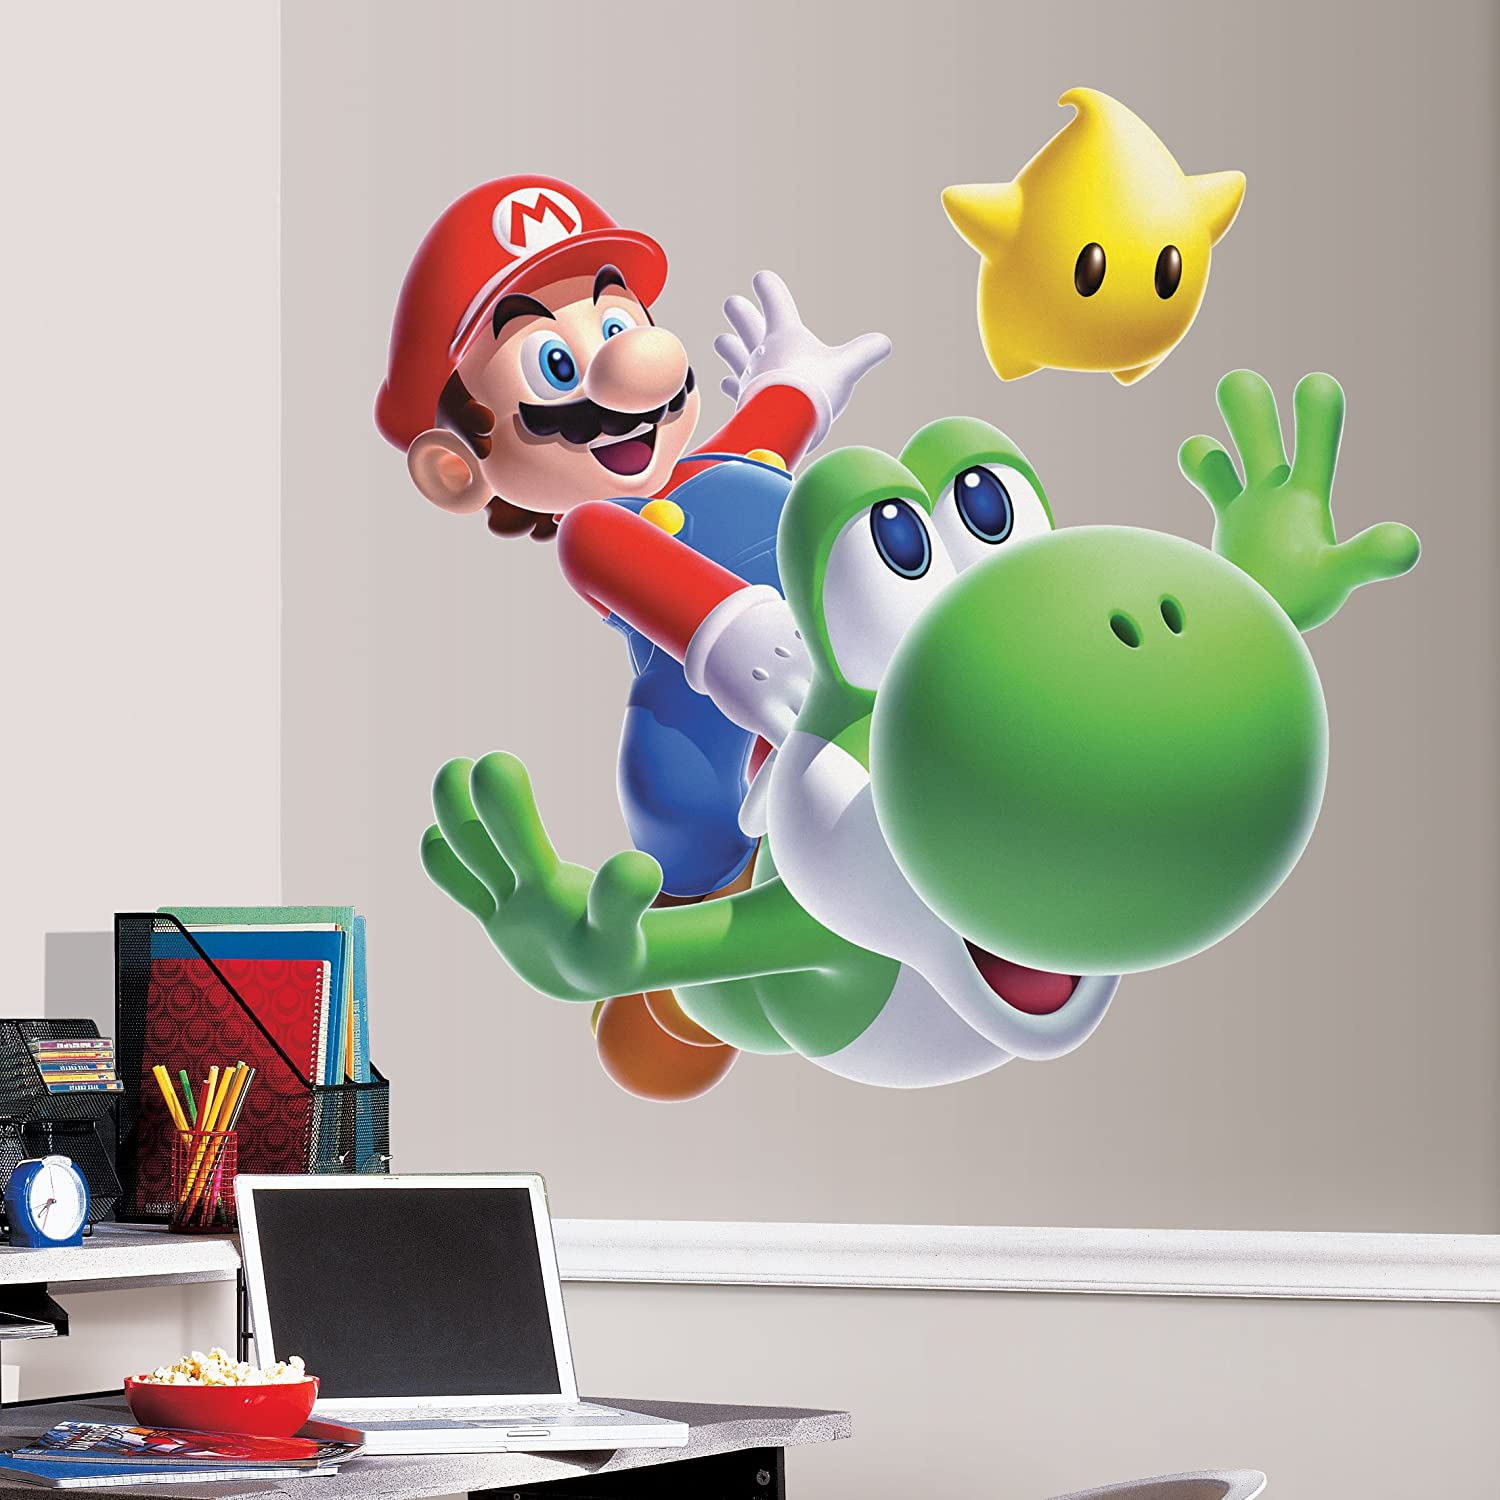 amazoncom roommates slm mario yoshi peel  stick giant wall  - amazoncom roommates slm mario yoshi peel  stick giant wall decalhome improvement